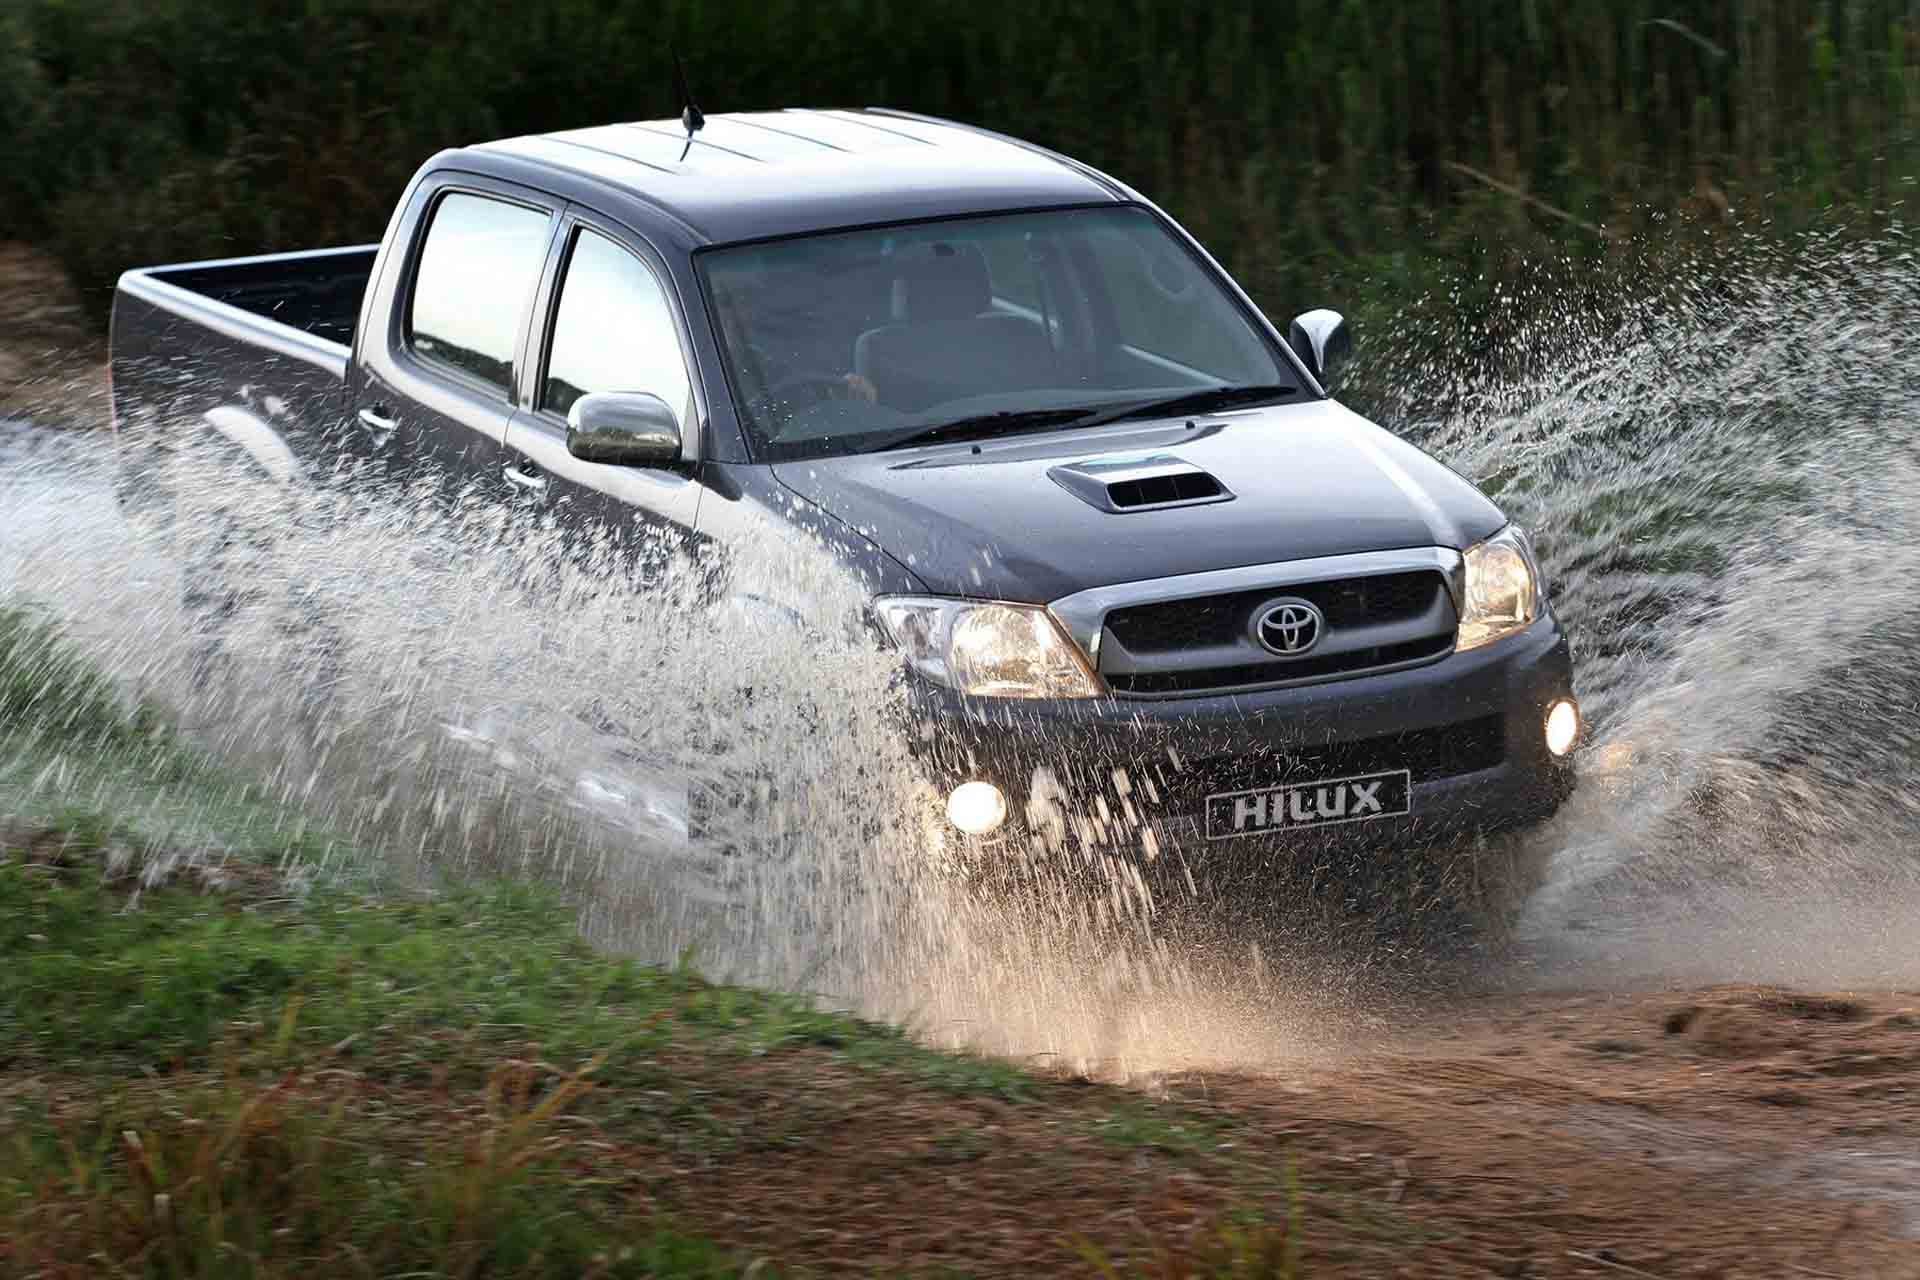 Toyota Hilux Vigo Champ Latest HD Wallpapers Free Download